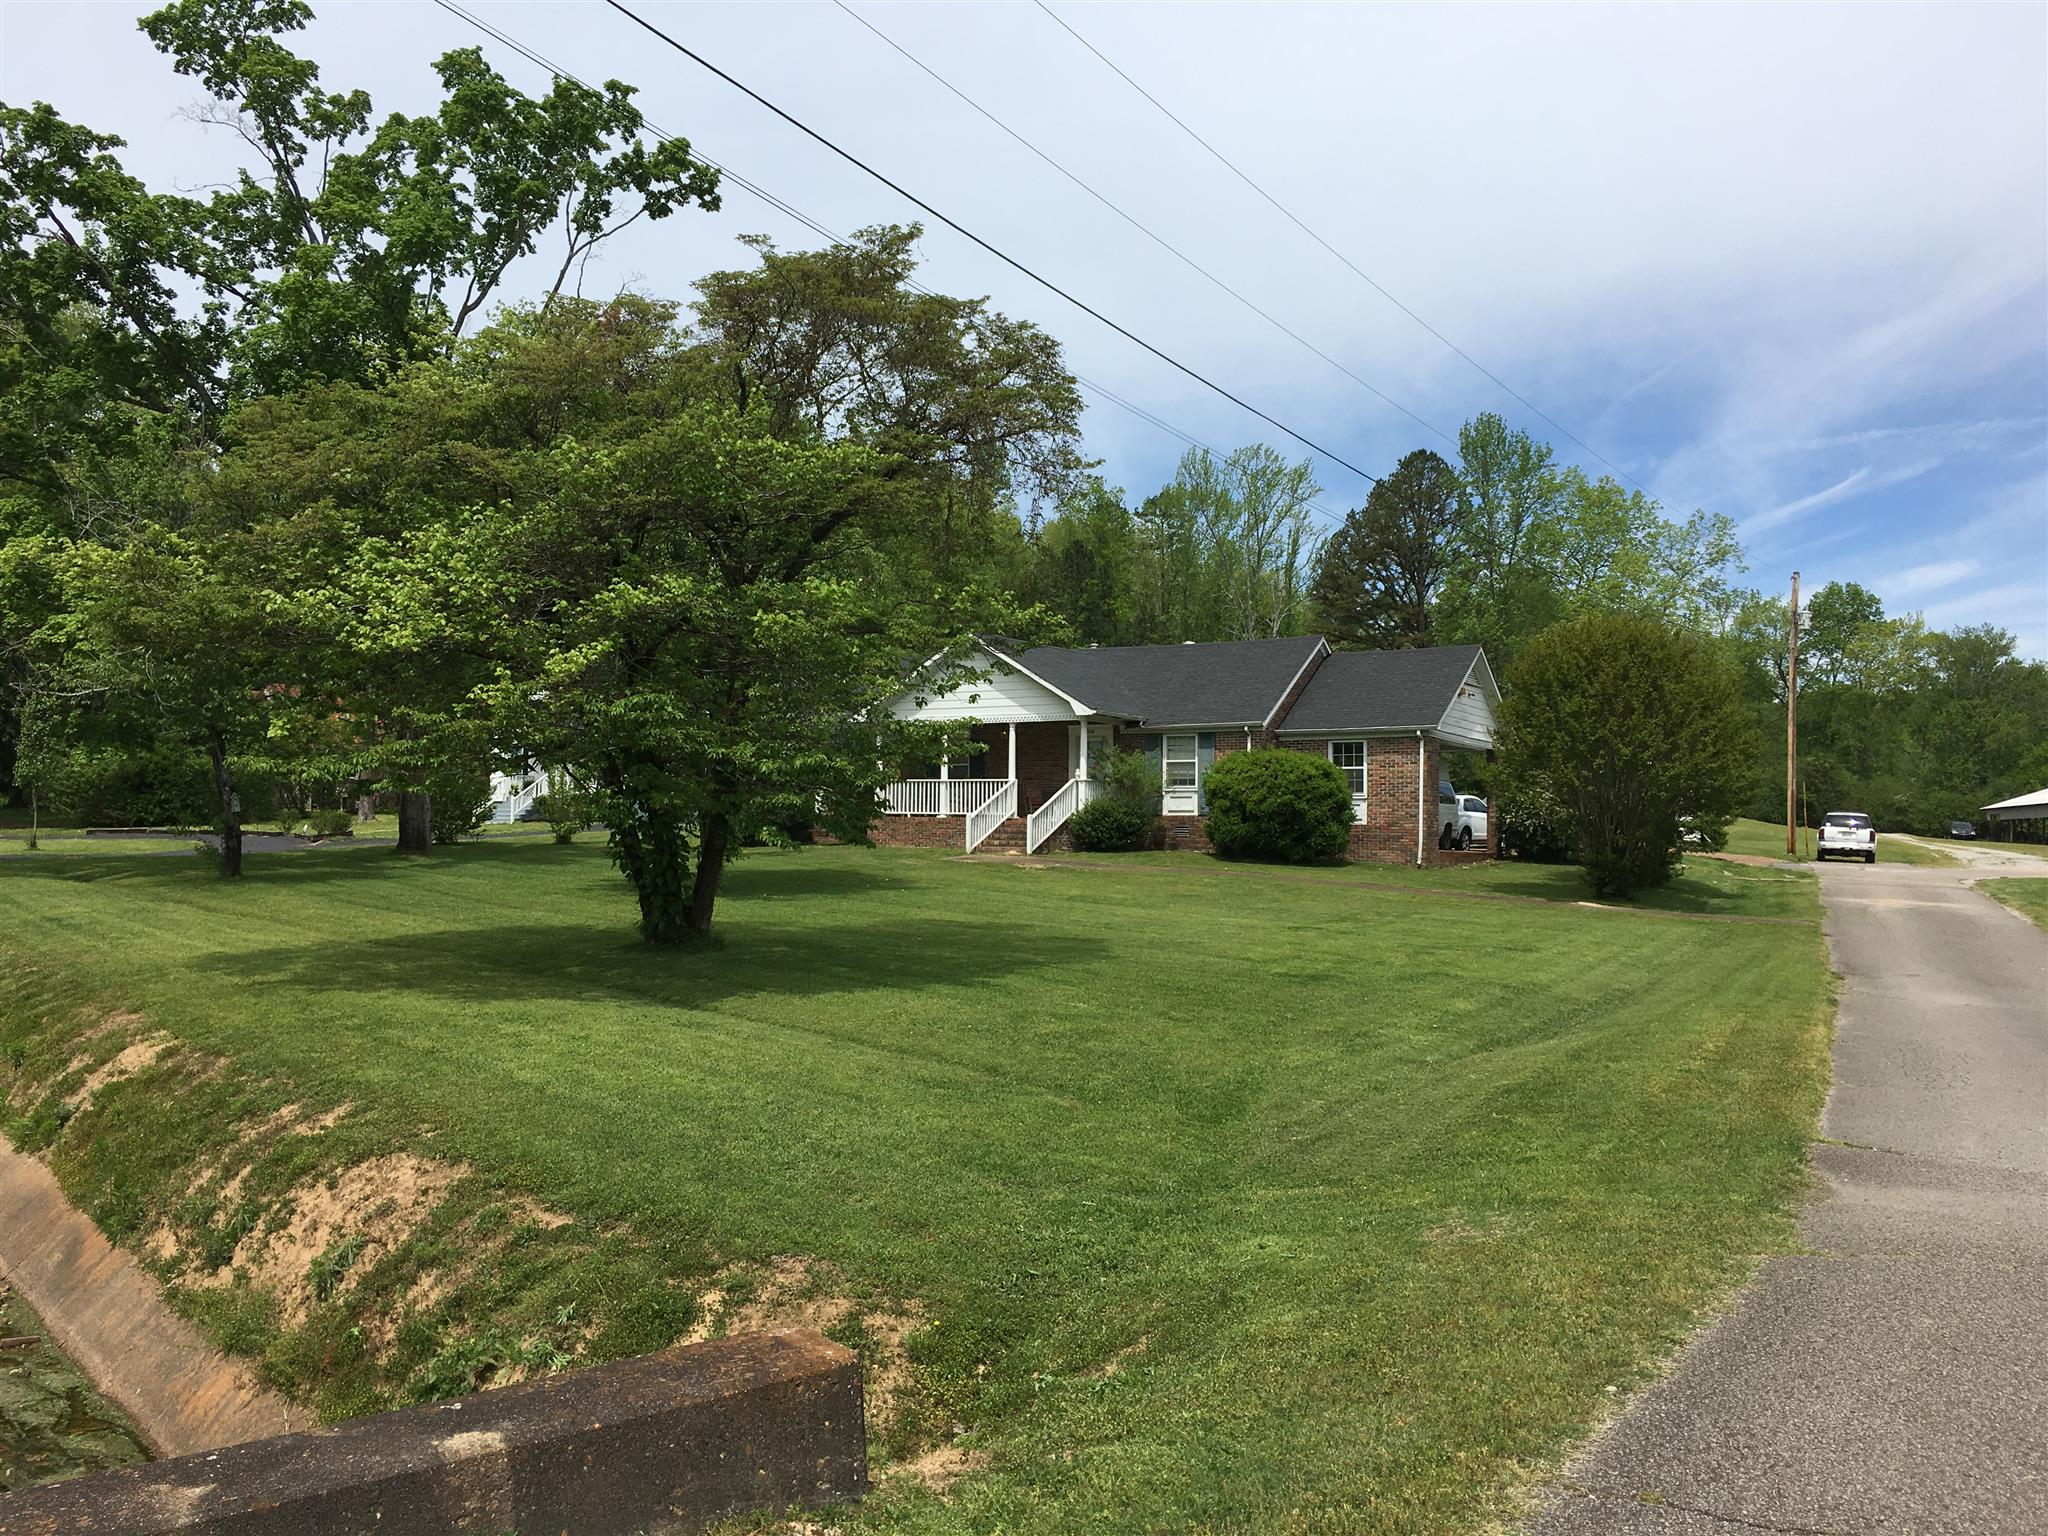 514 Hwy 64 West, W, Waynesboro, TN 38485 - Waynesboro, TN real estate listing